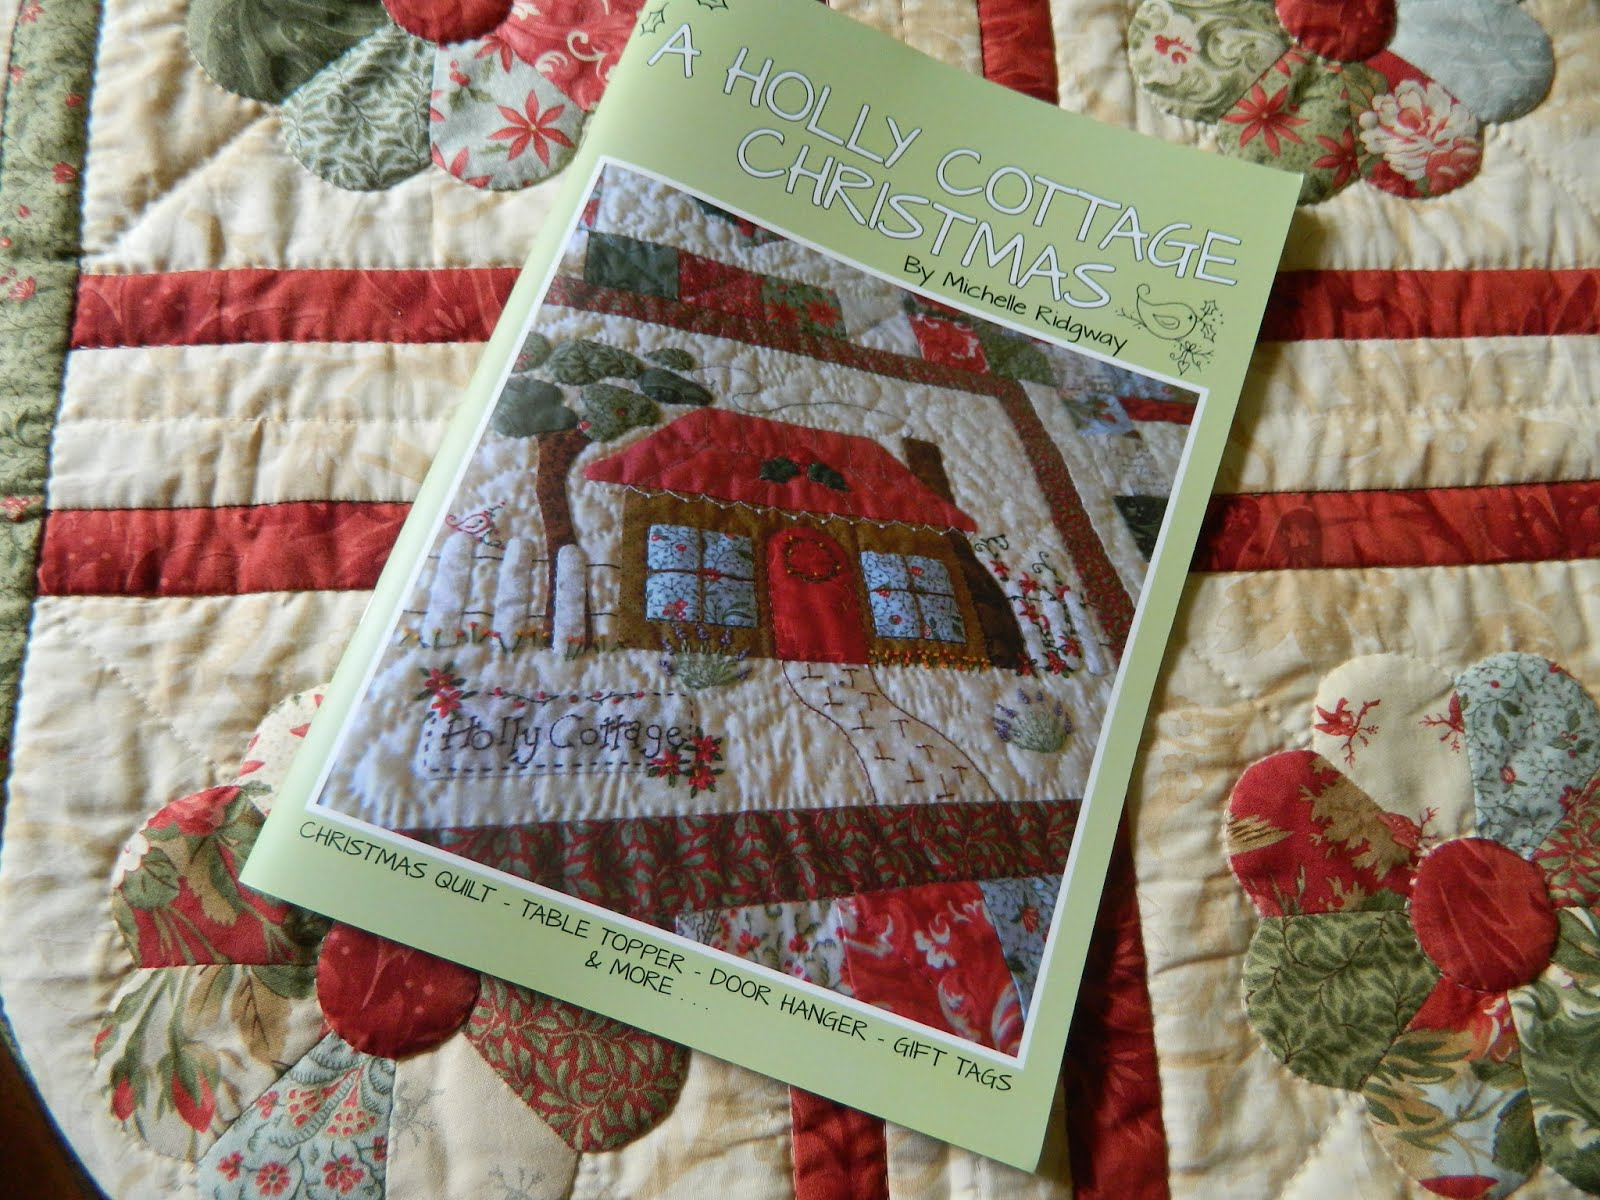 A HOLLY COTTAGE CHRISTMAS BOOK